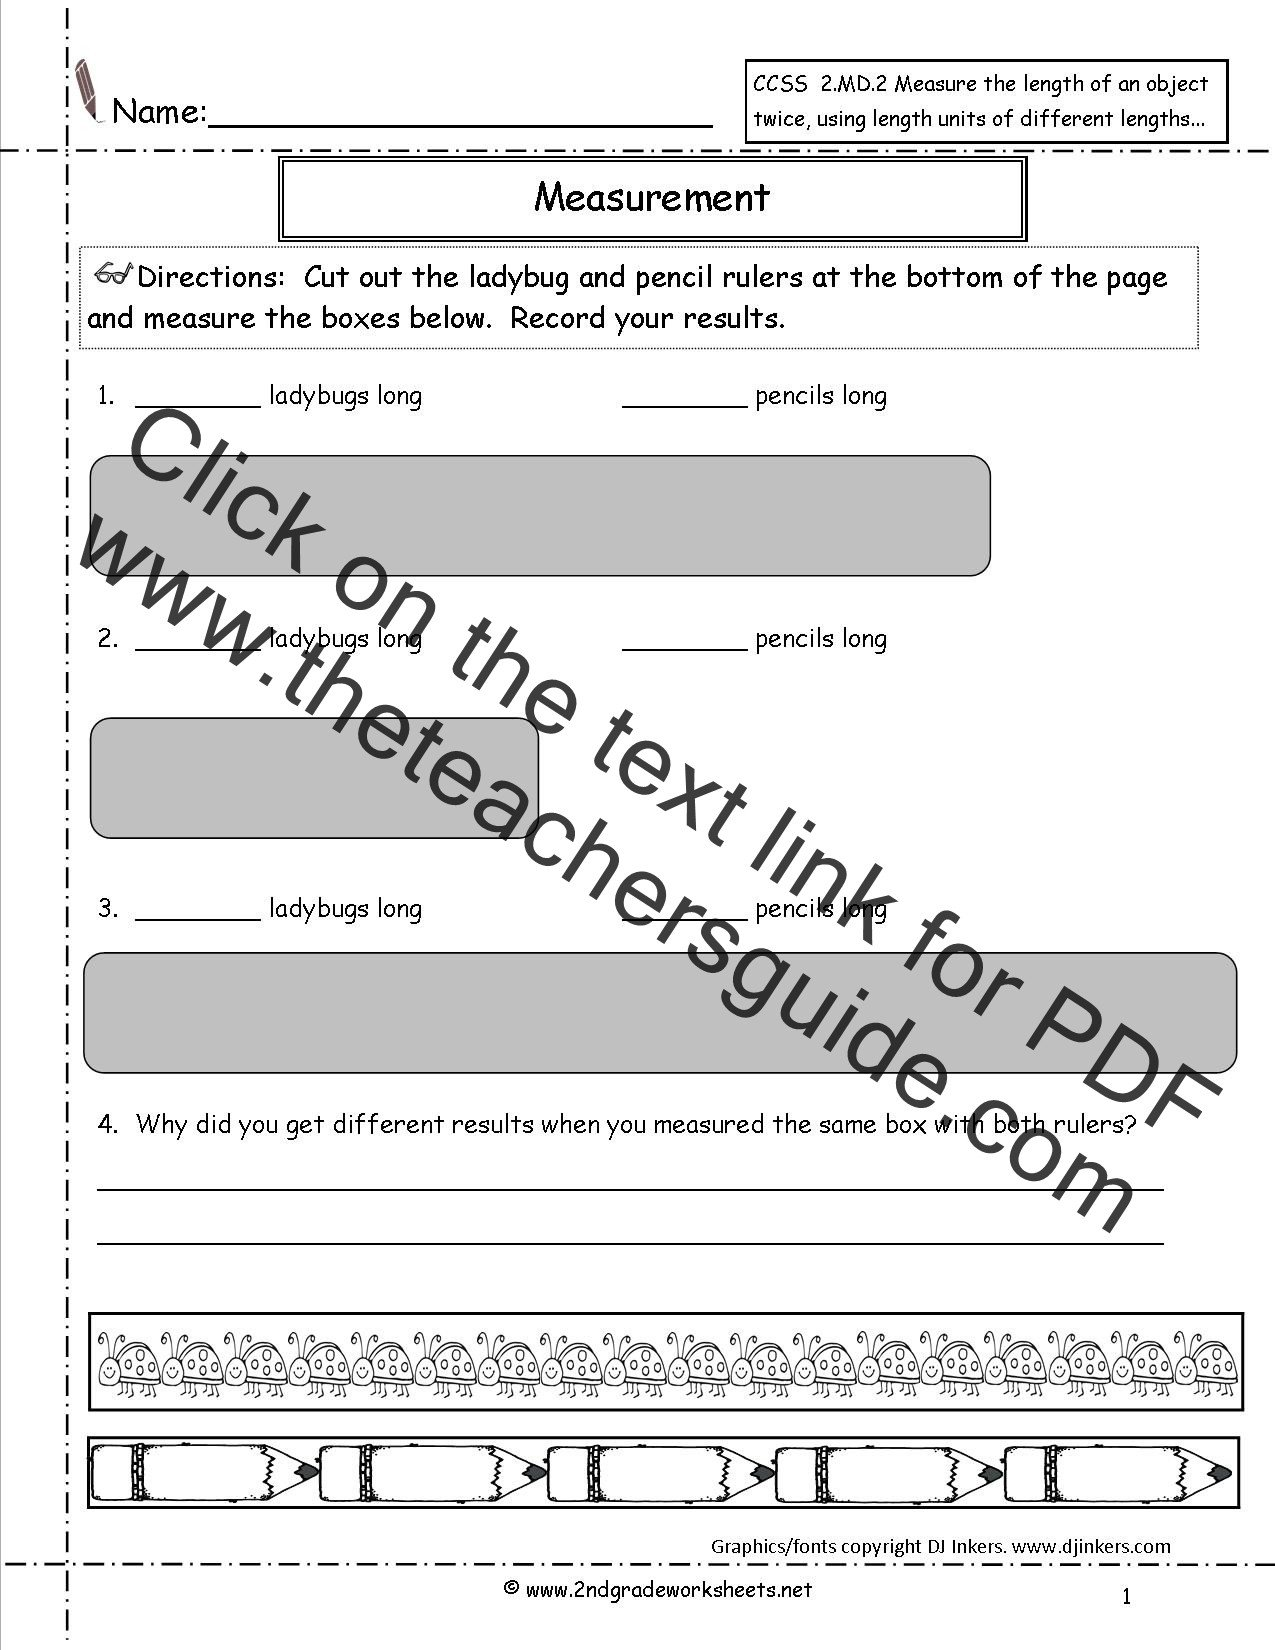 Estimating Measurement Worksheets Ccss 2 Md 2 Worksheets Measuring and Estimating Lengths